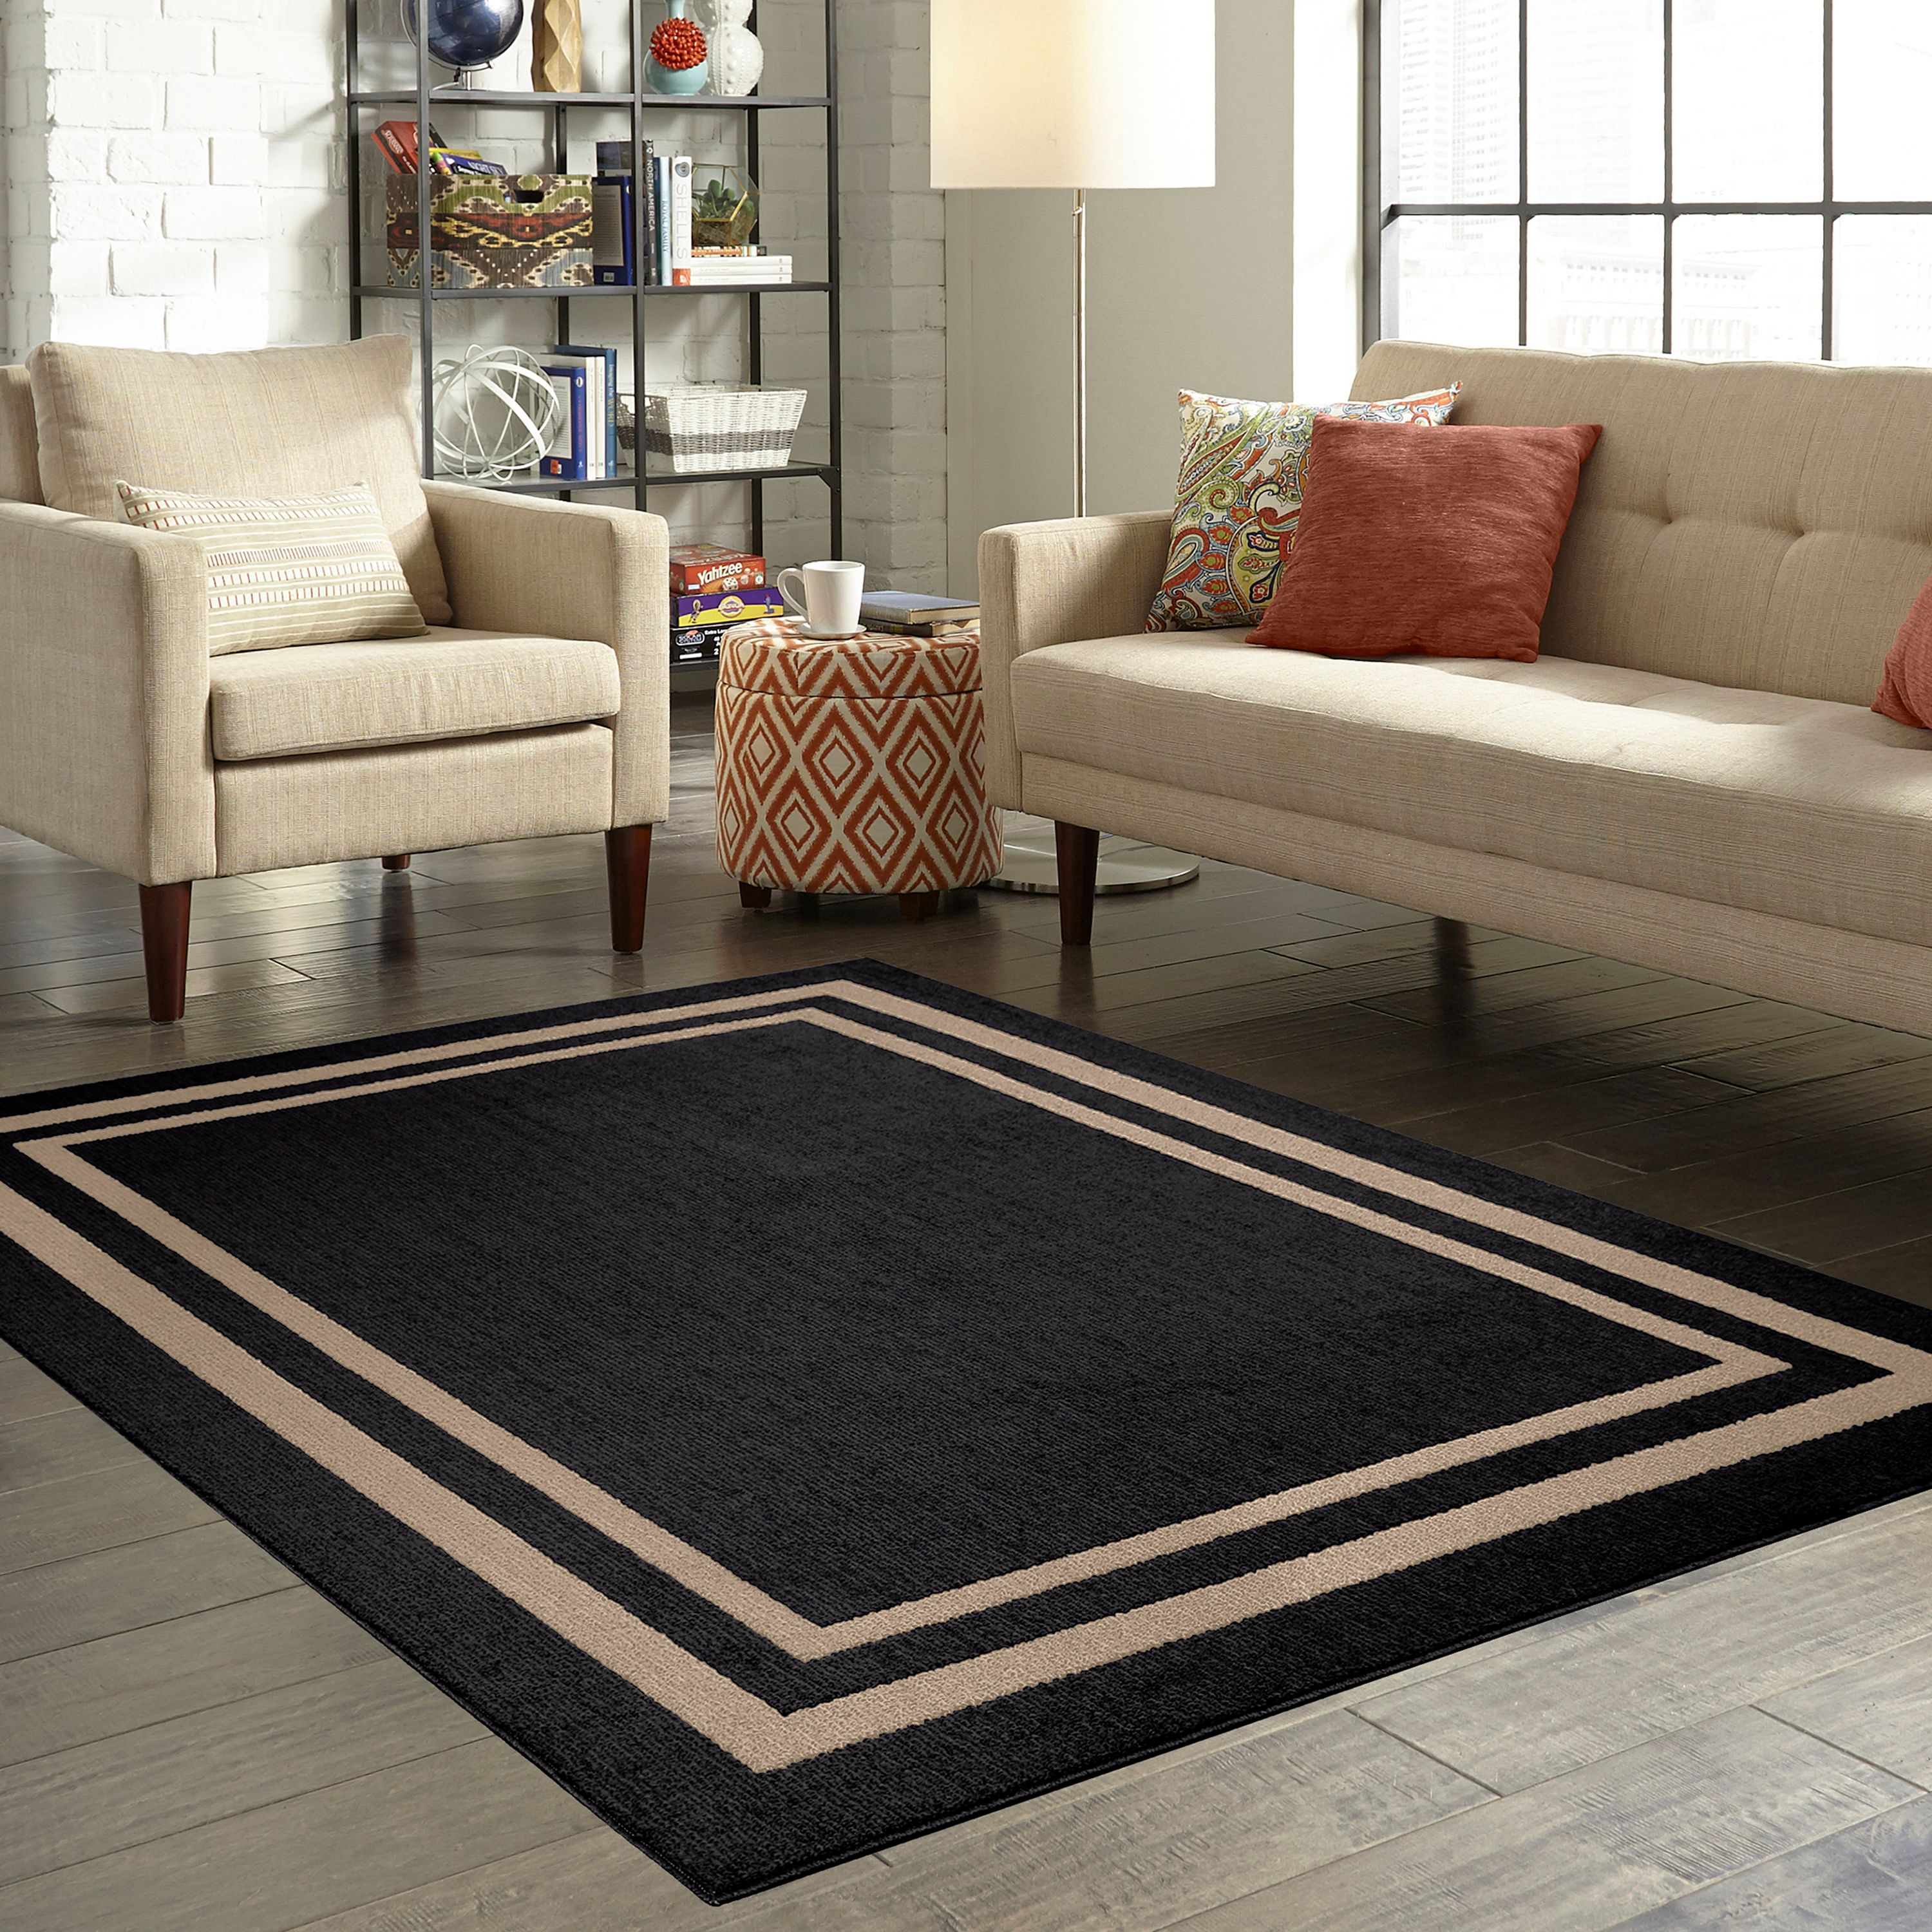 Mainstays Frame Border Area Rugs Or Runner Walmart Com